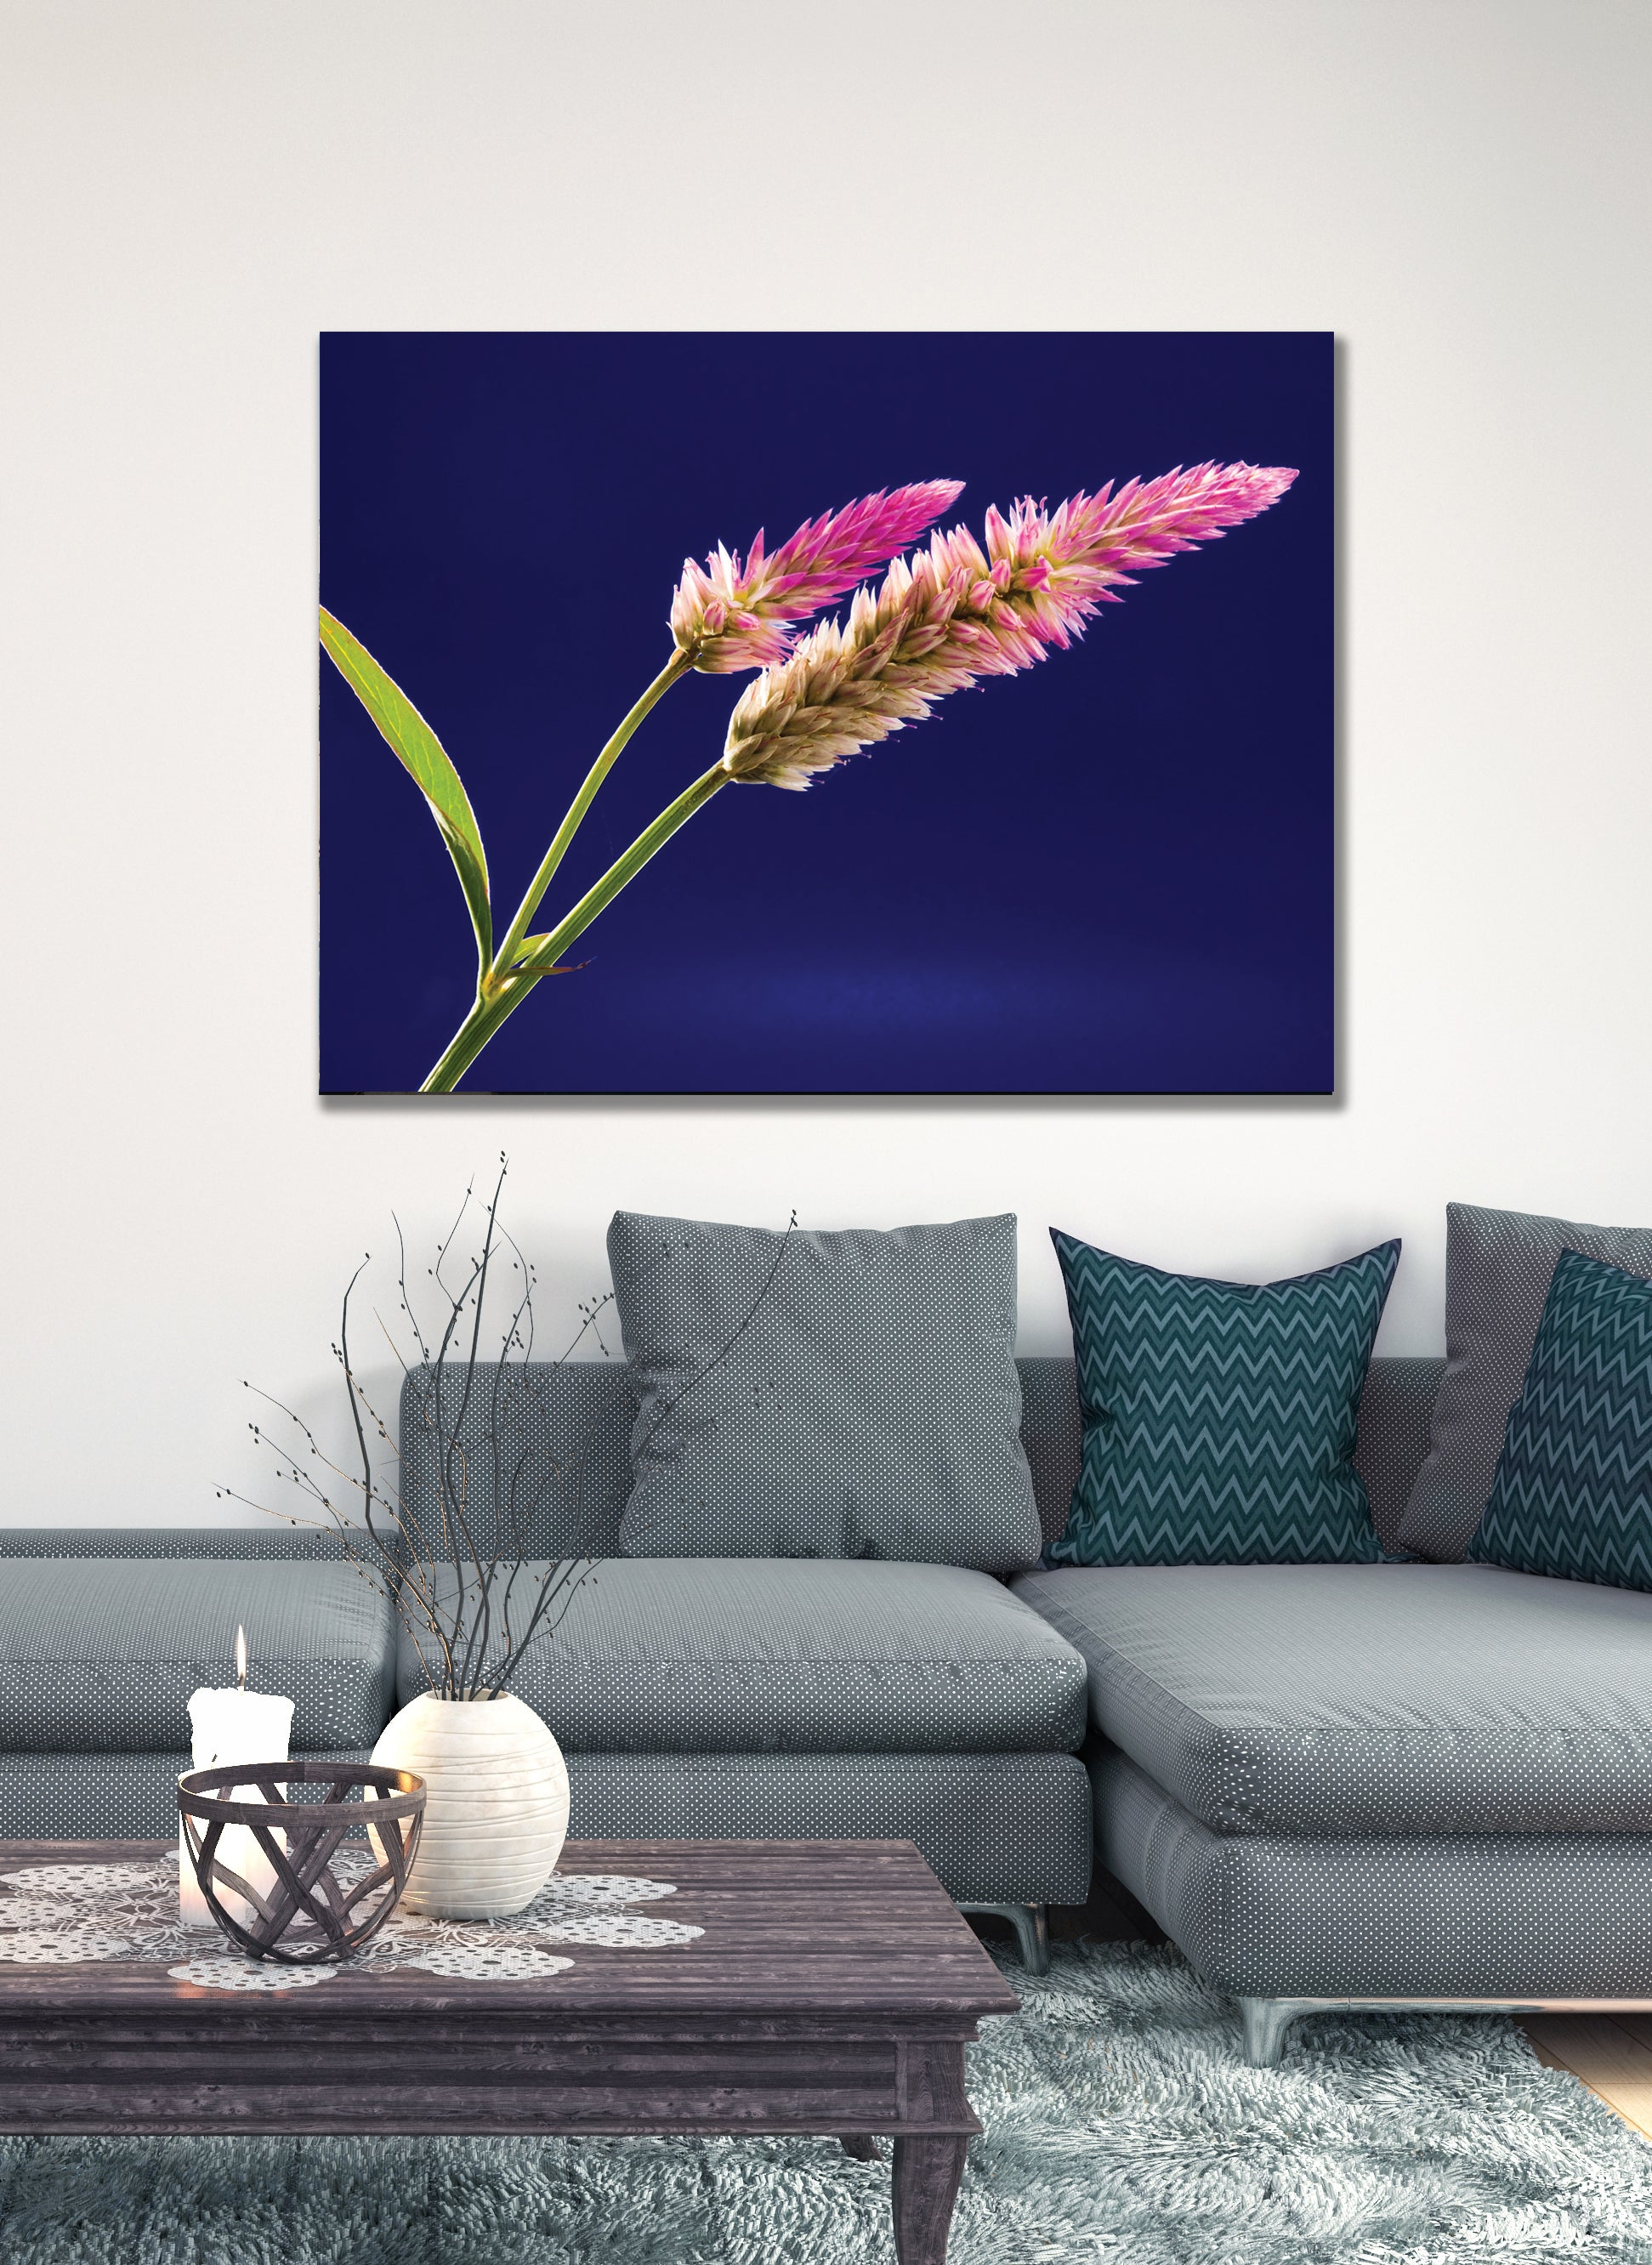 Flower Wall Art: White and Purple Clustered Elongated Plant (Wood Frame Ready To Hang)